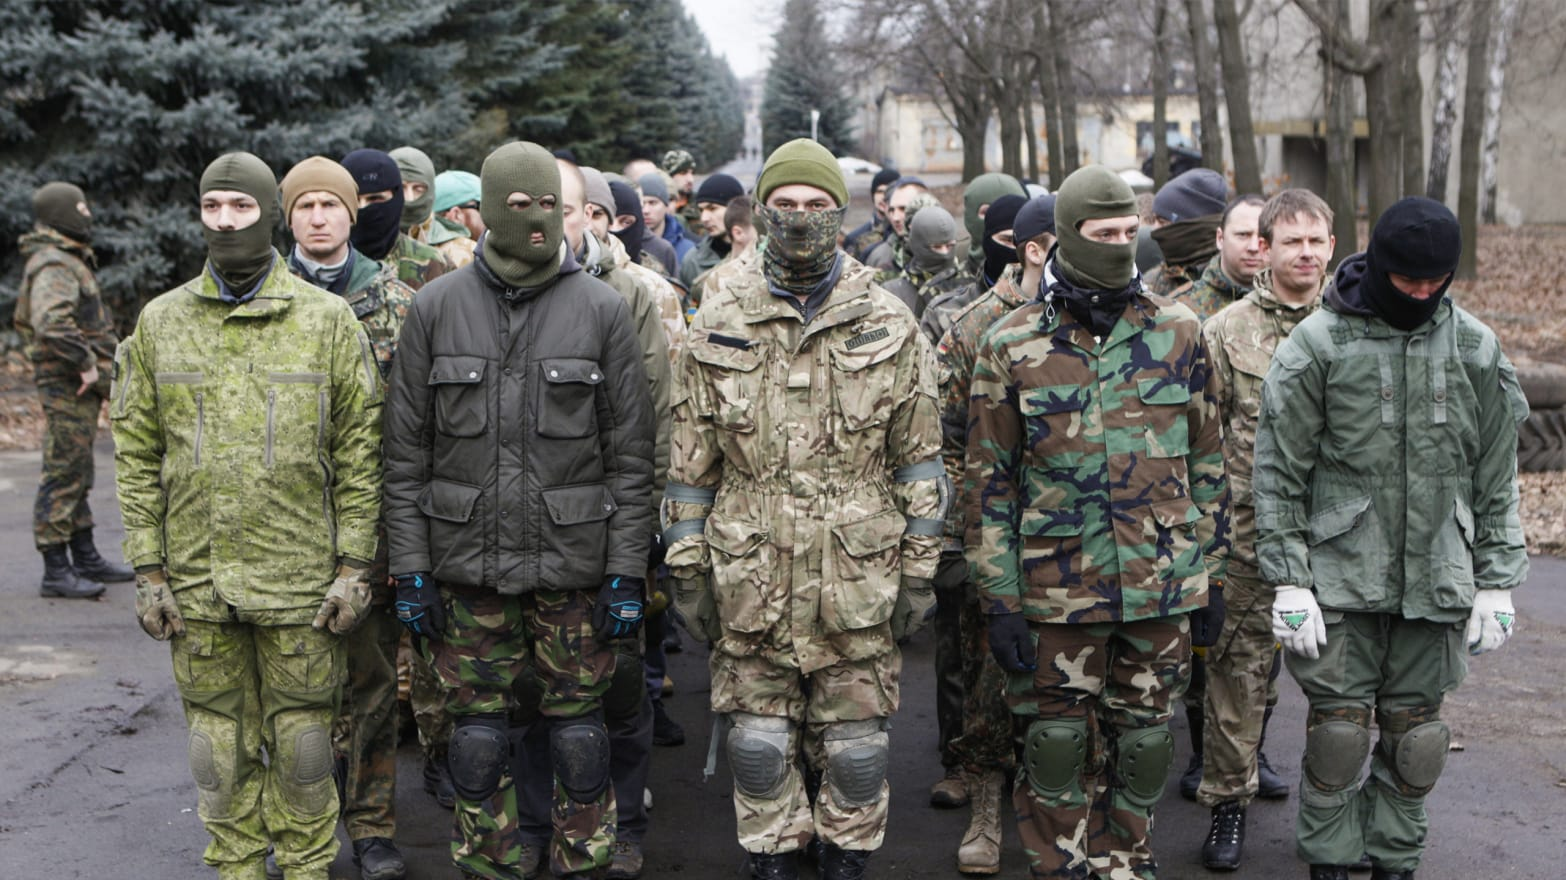 How Many Neo-Nazis Is the U.S. Backing in Ukraine?